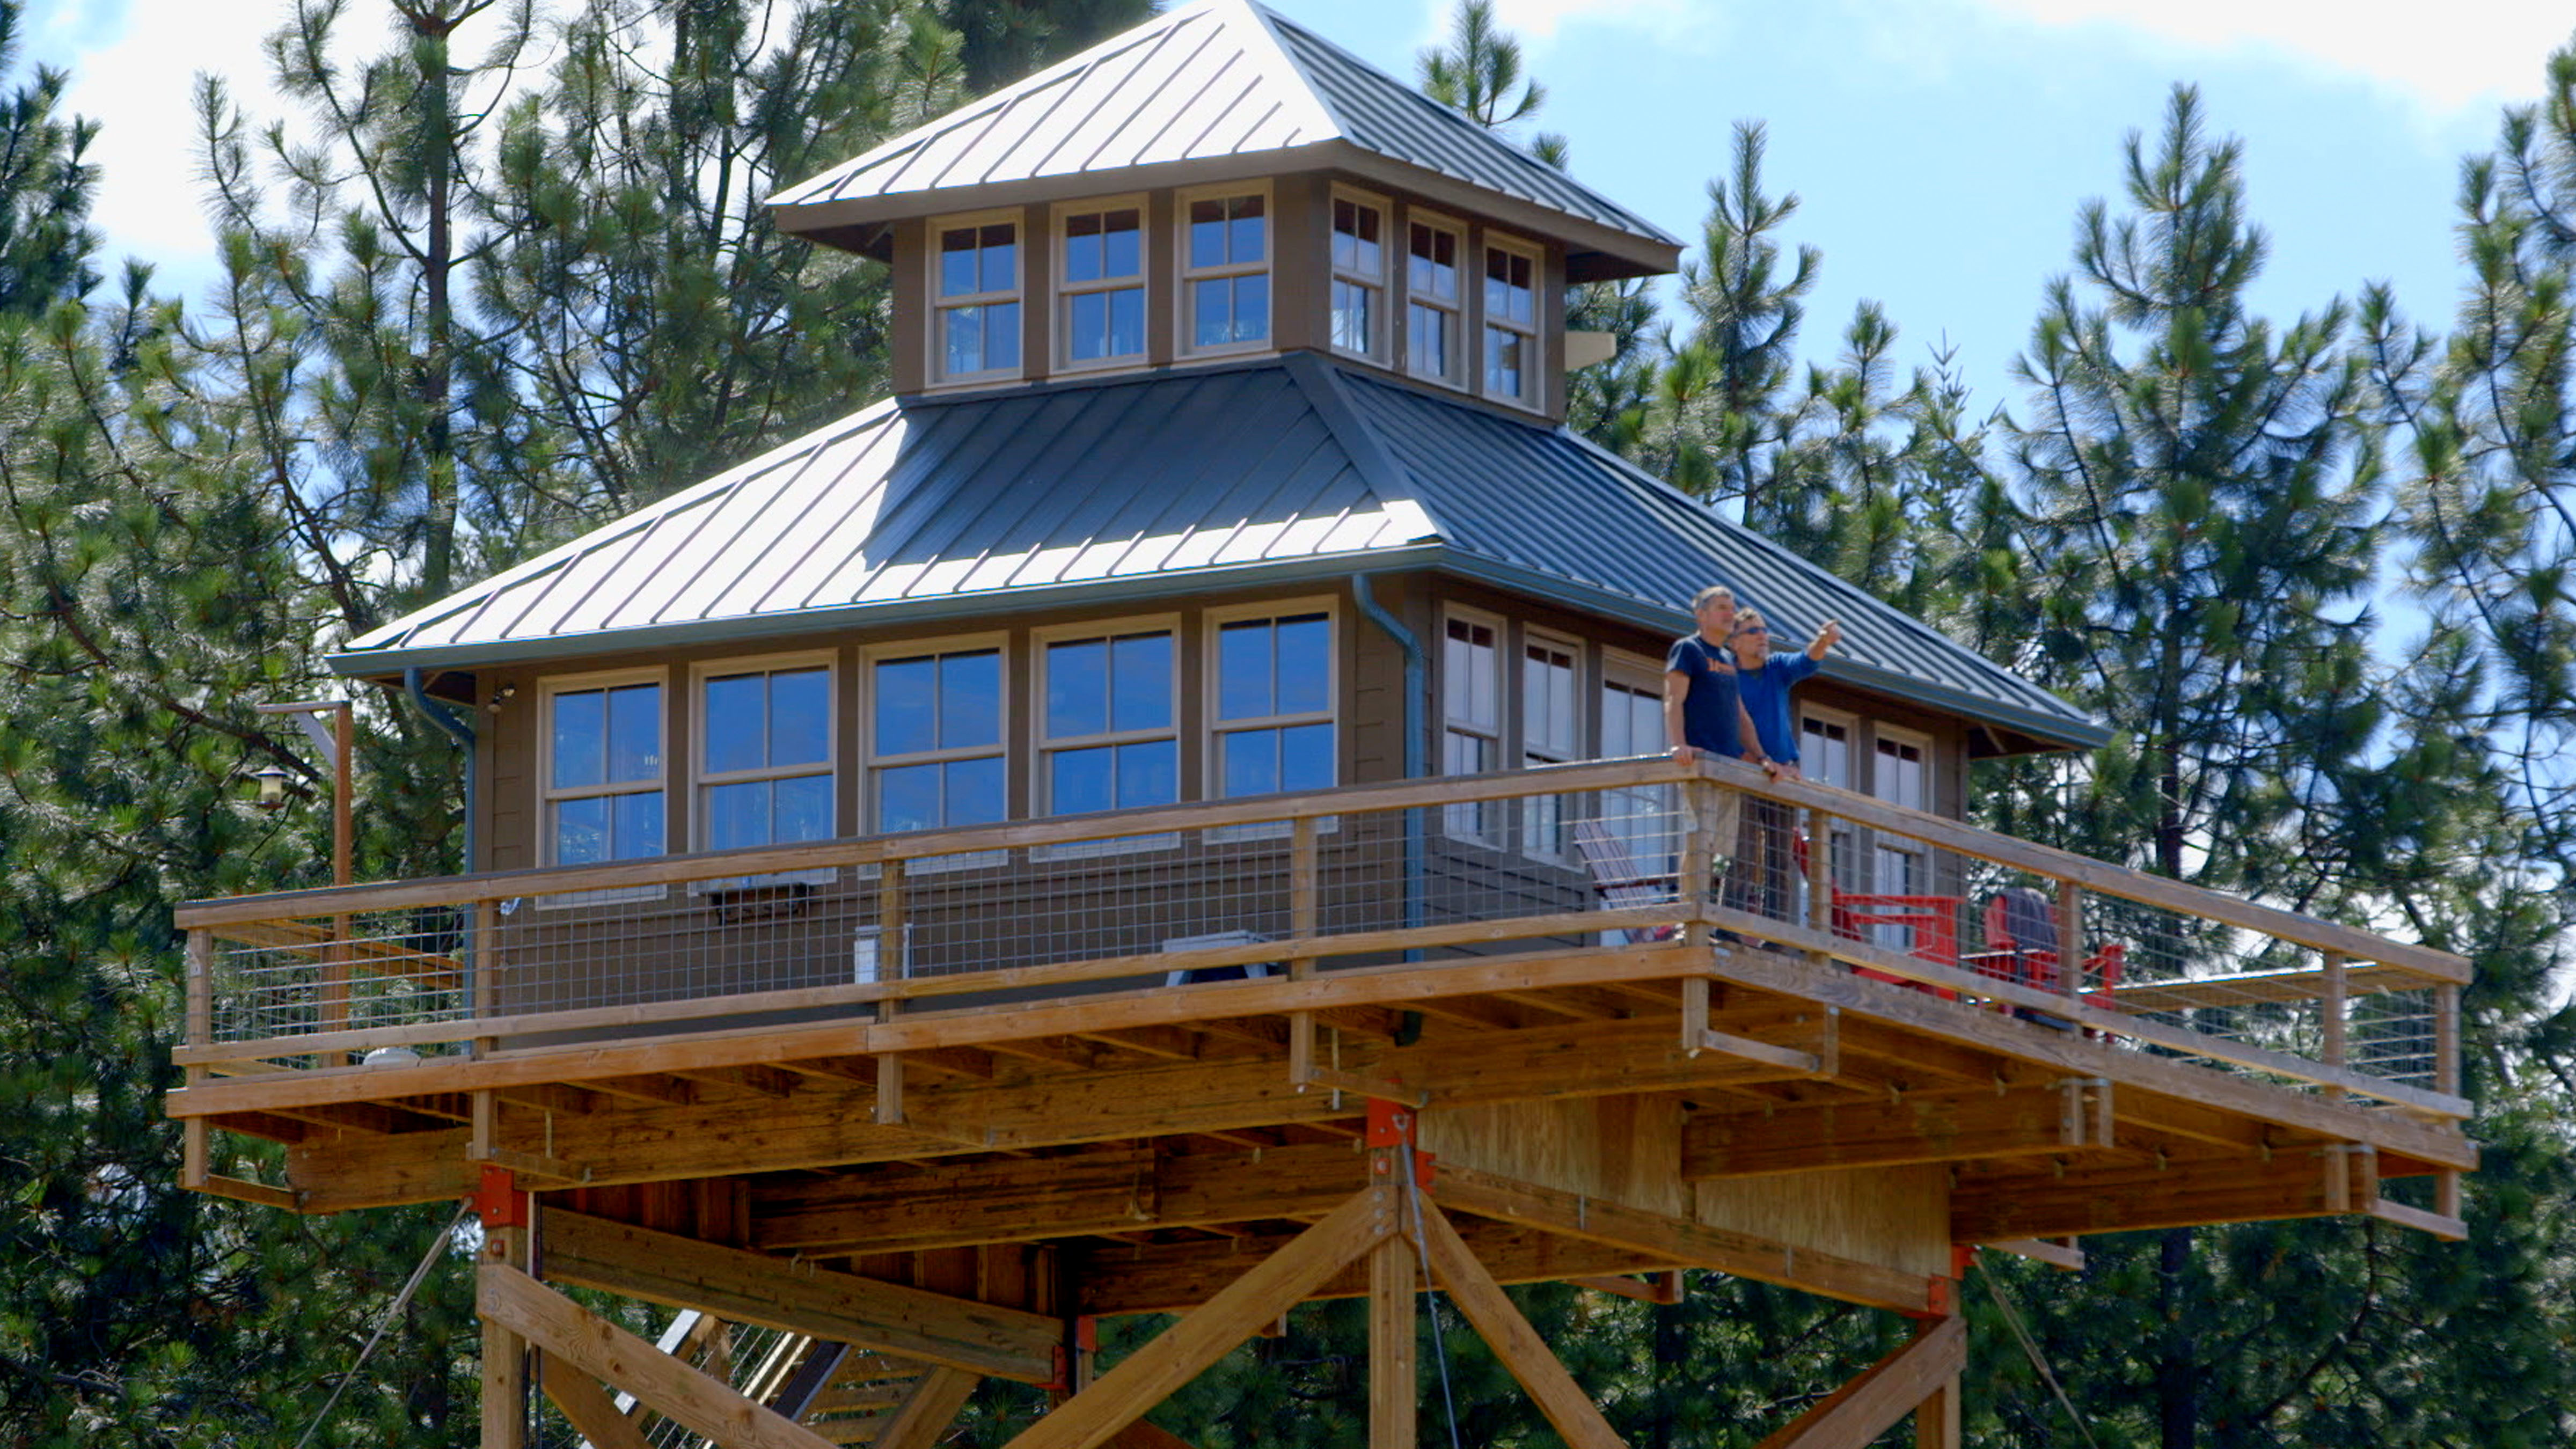 Treehouses Aren't Just for Kids Anymore